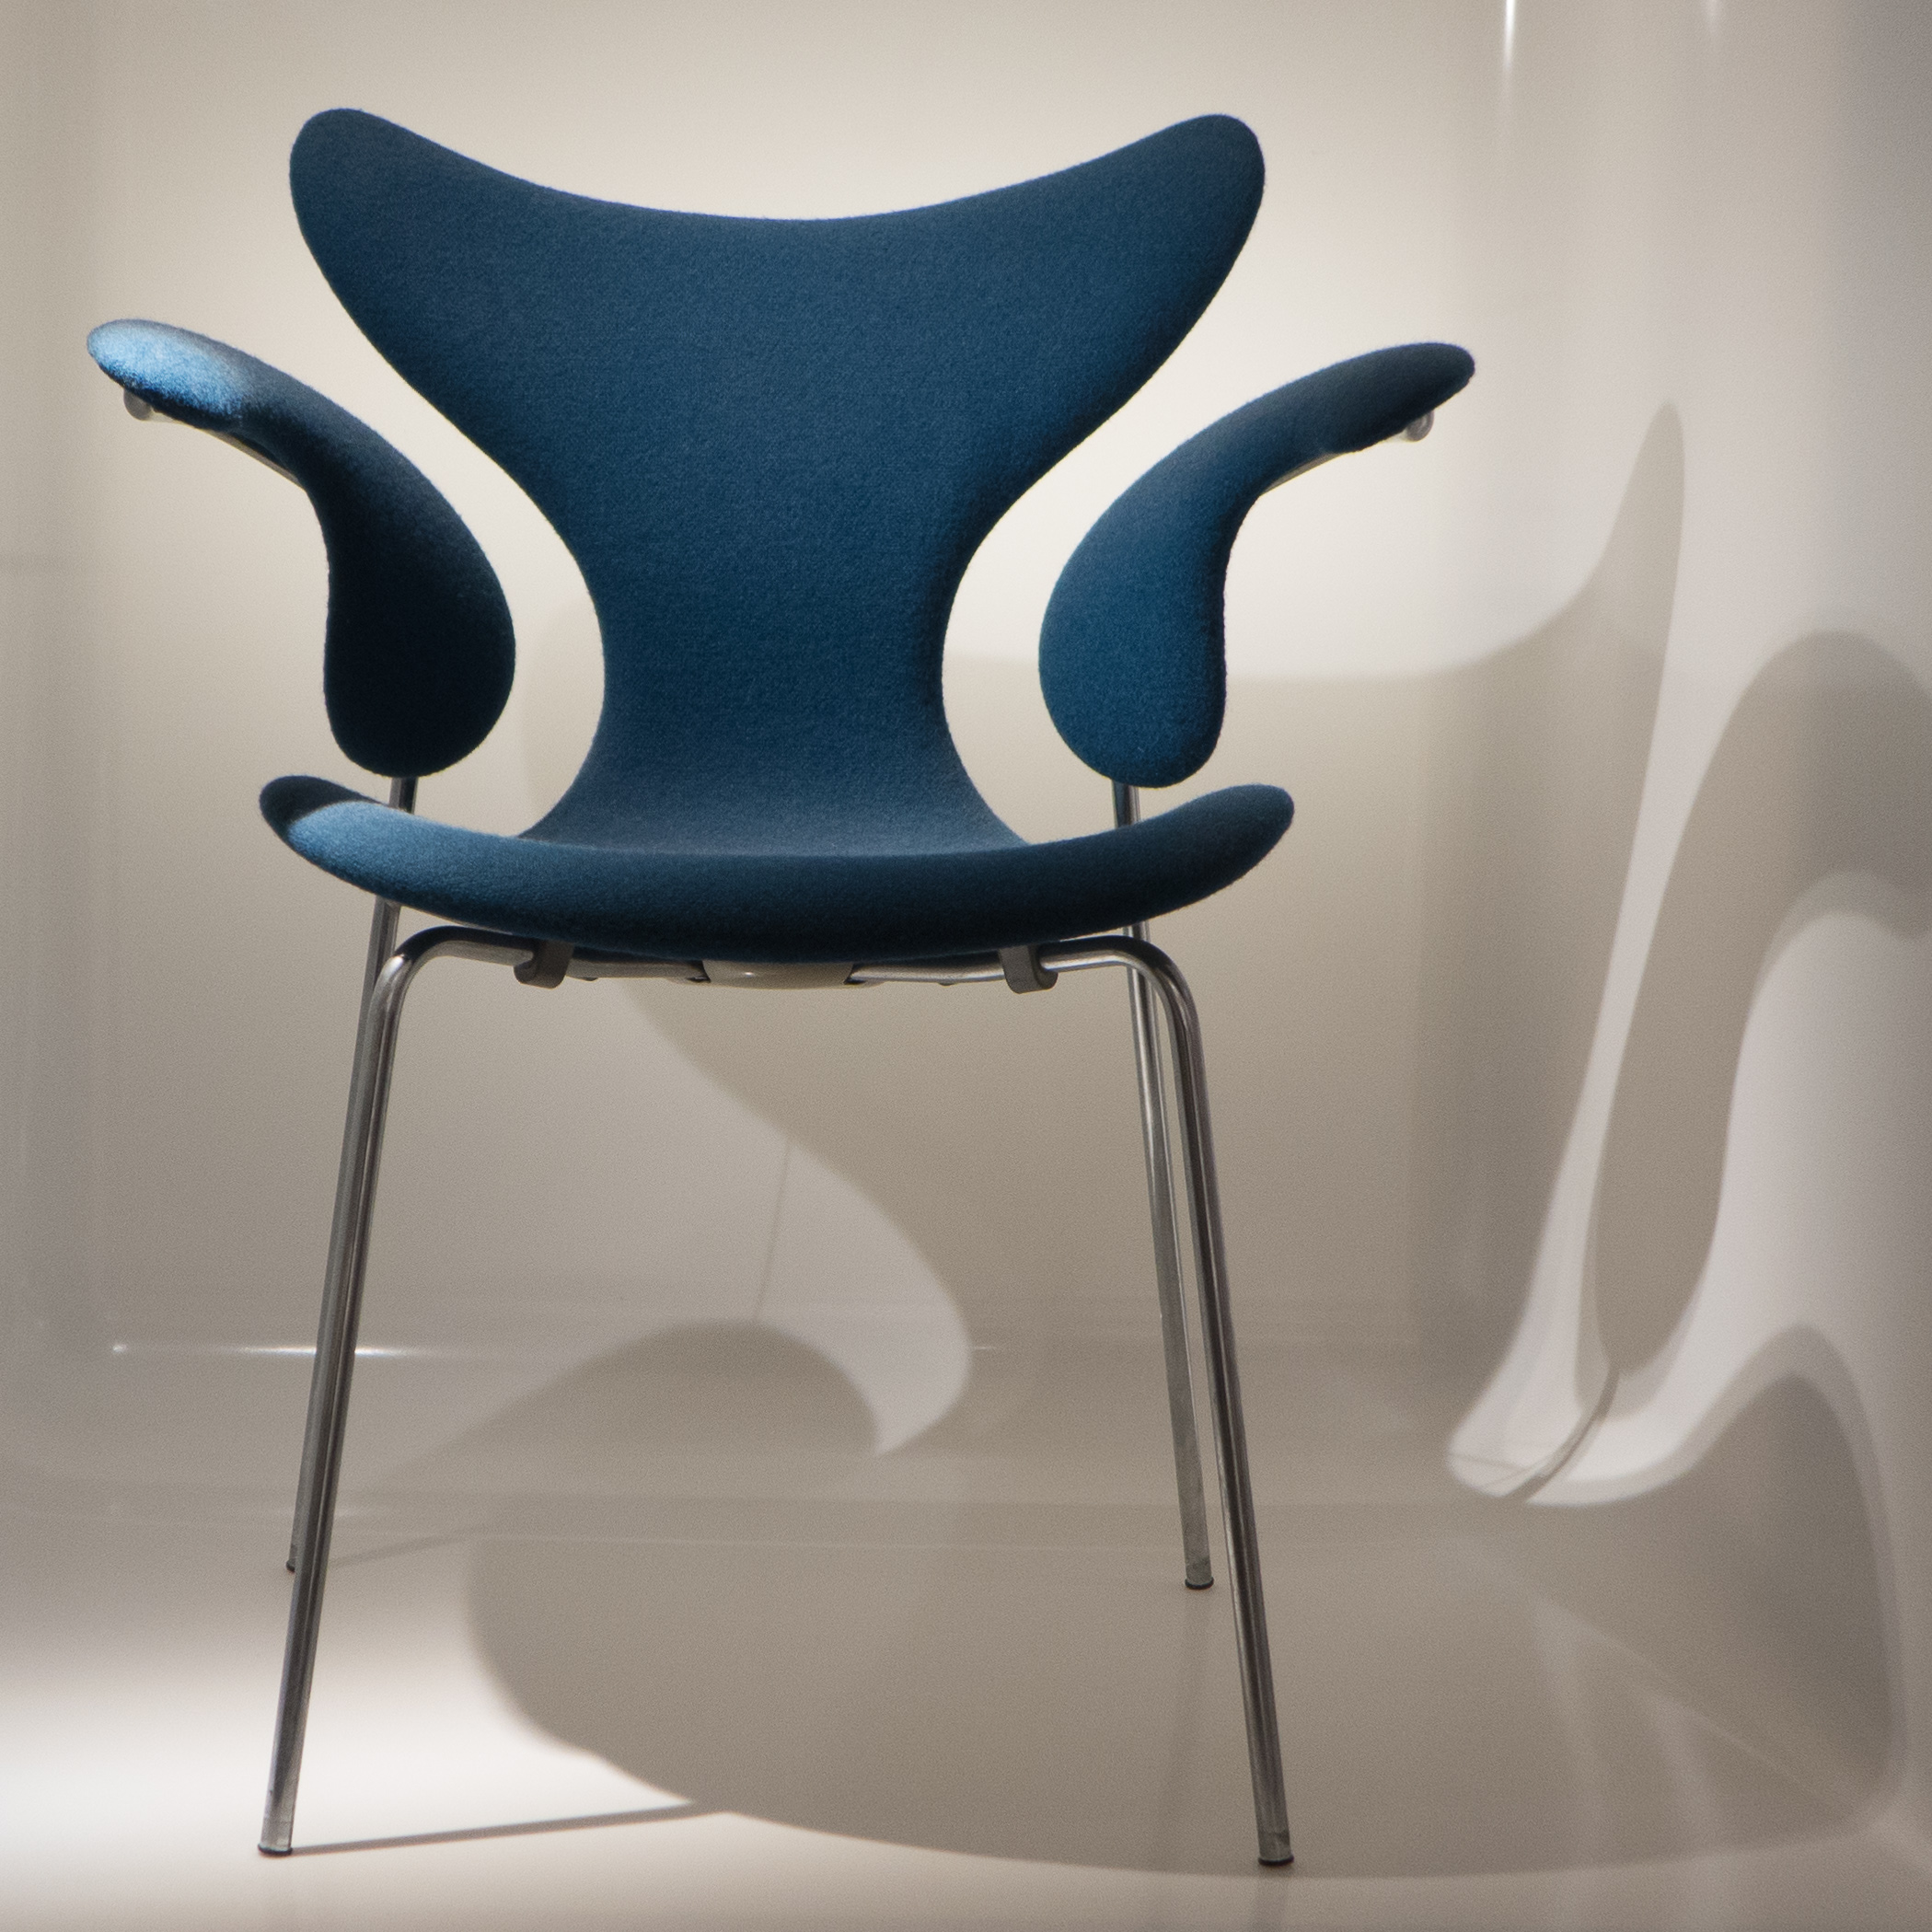 Copy of Arne Jacobsen